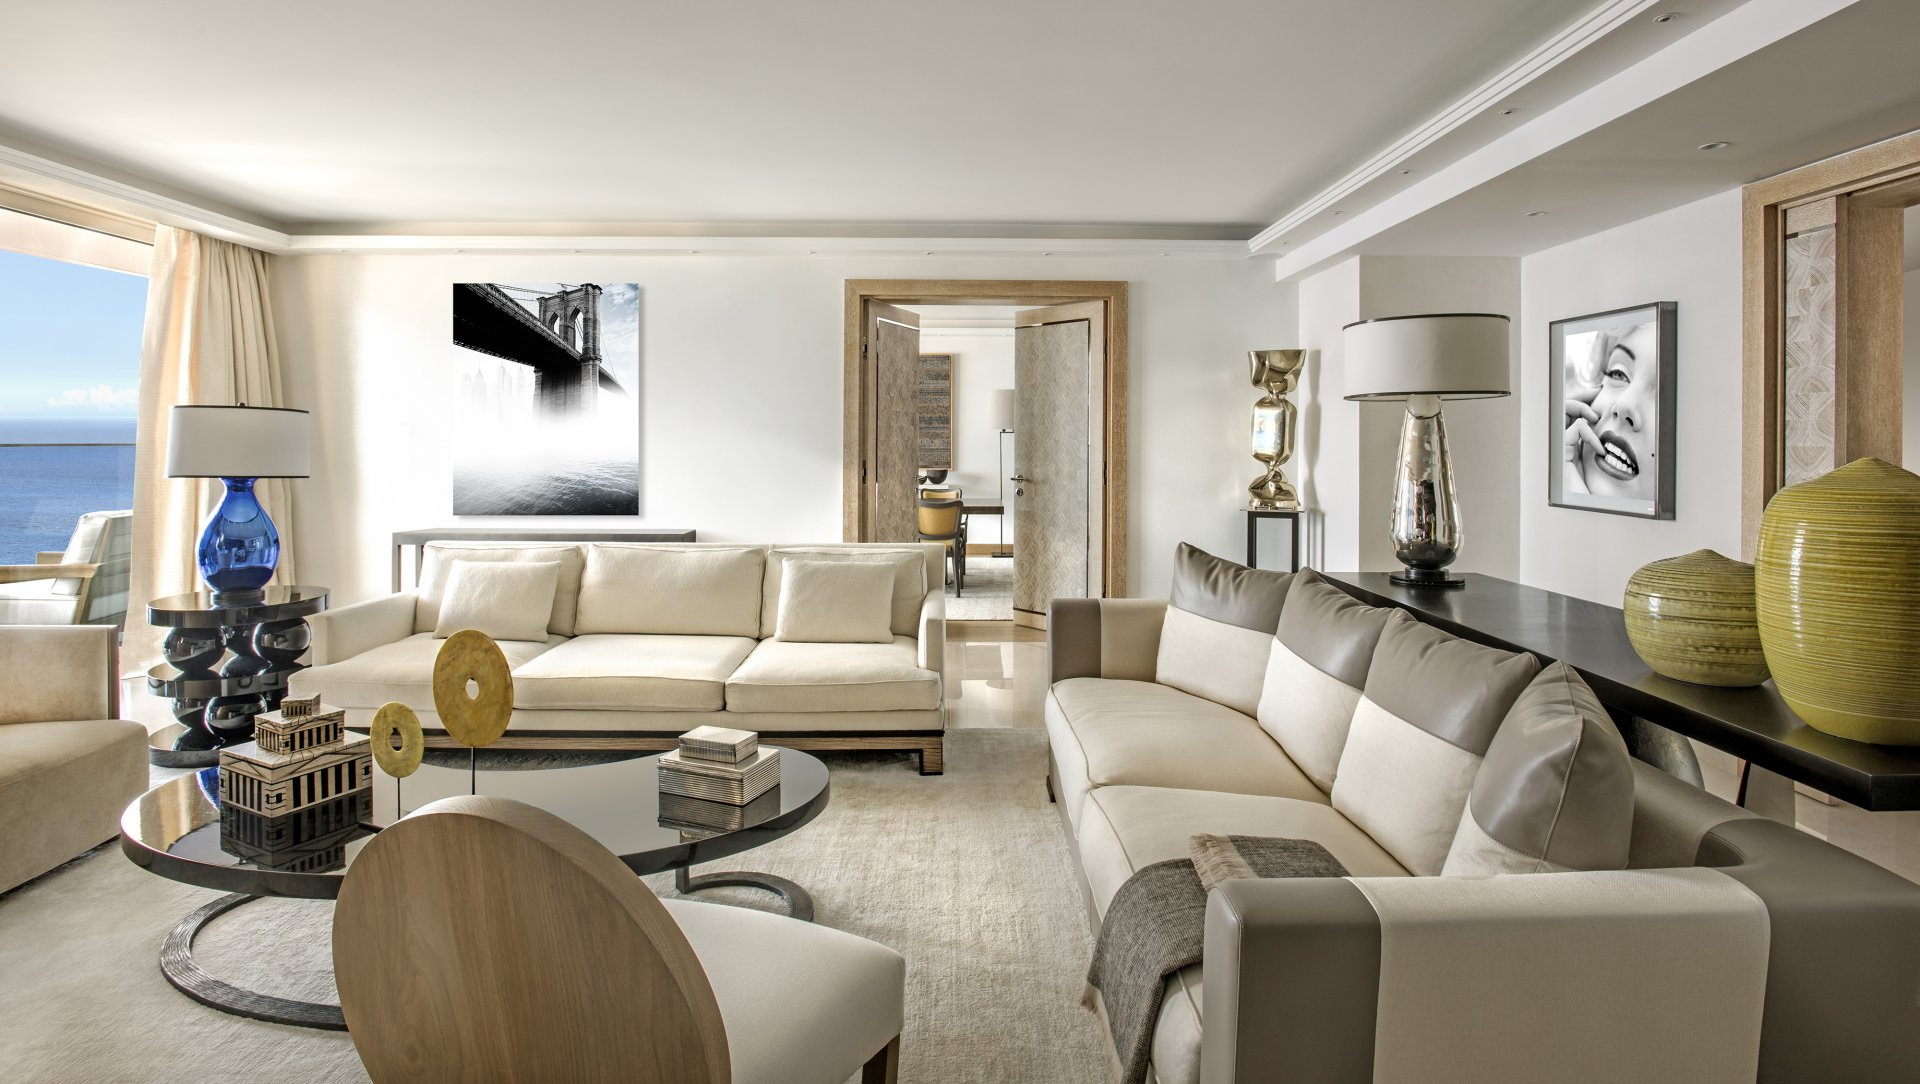 Tour Odeon - Furnished Five Bedroom